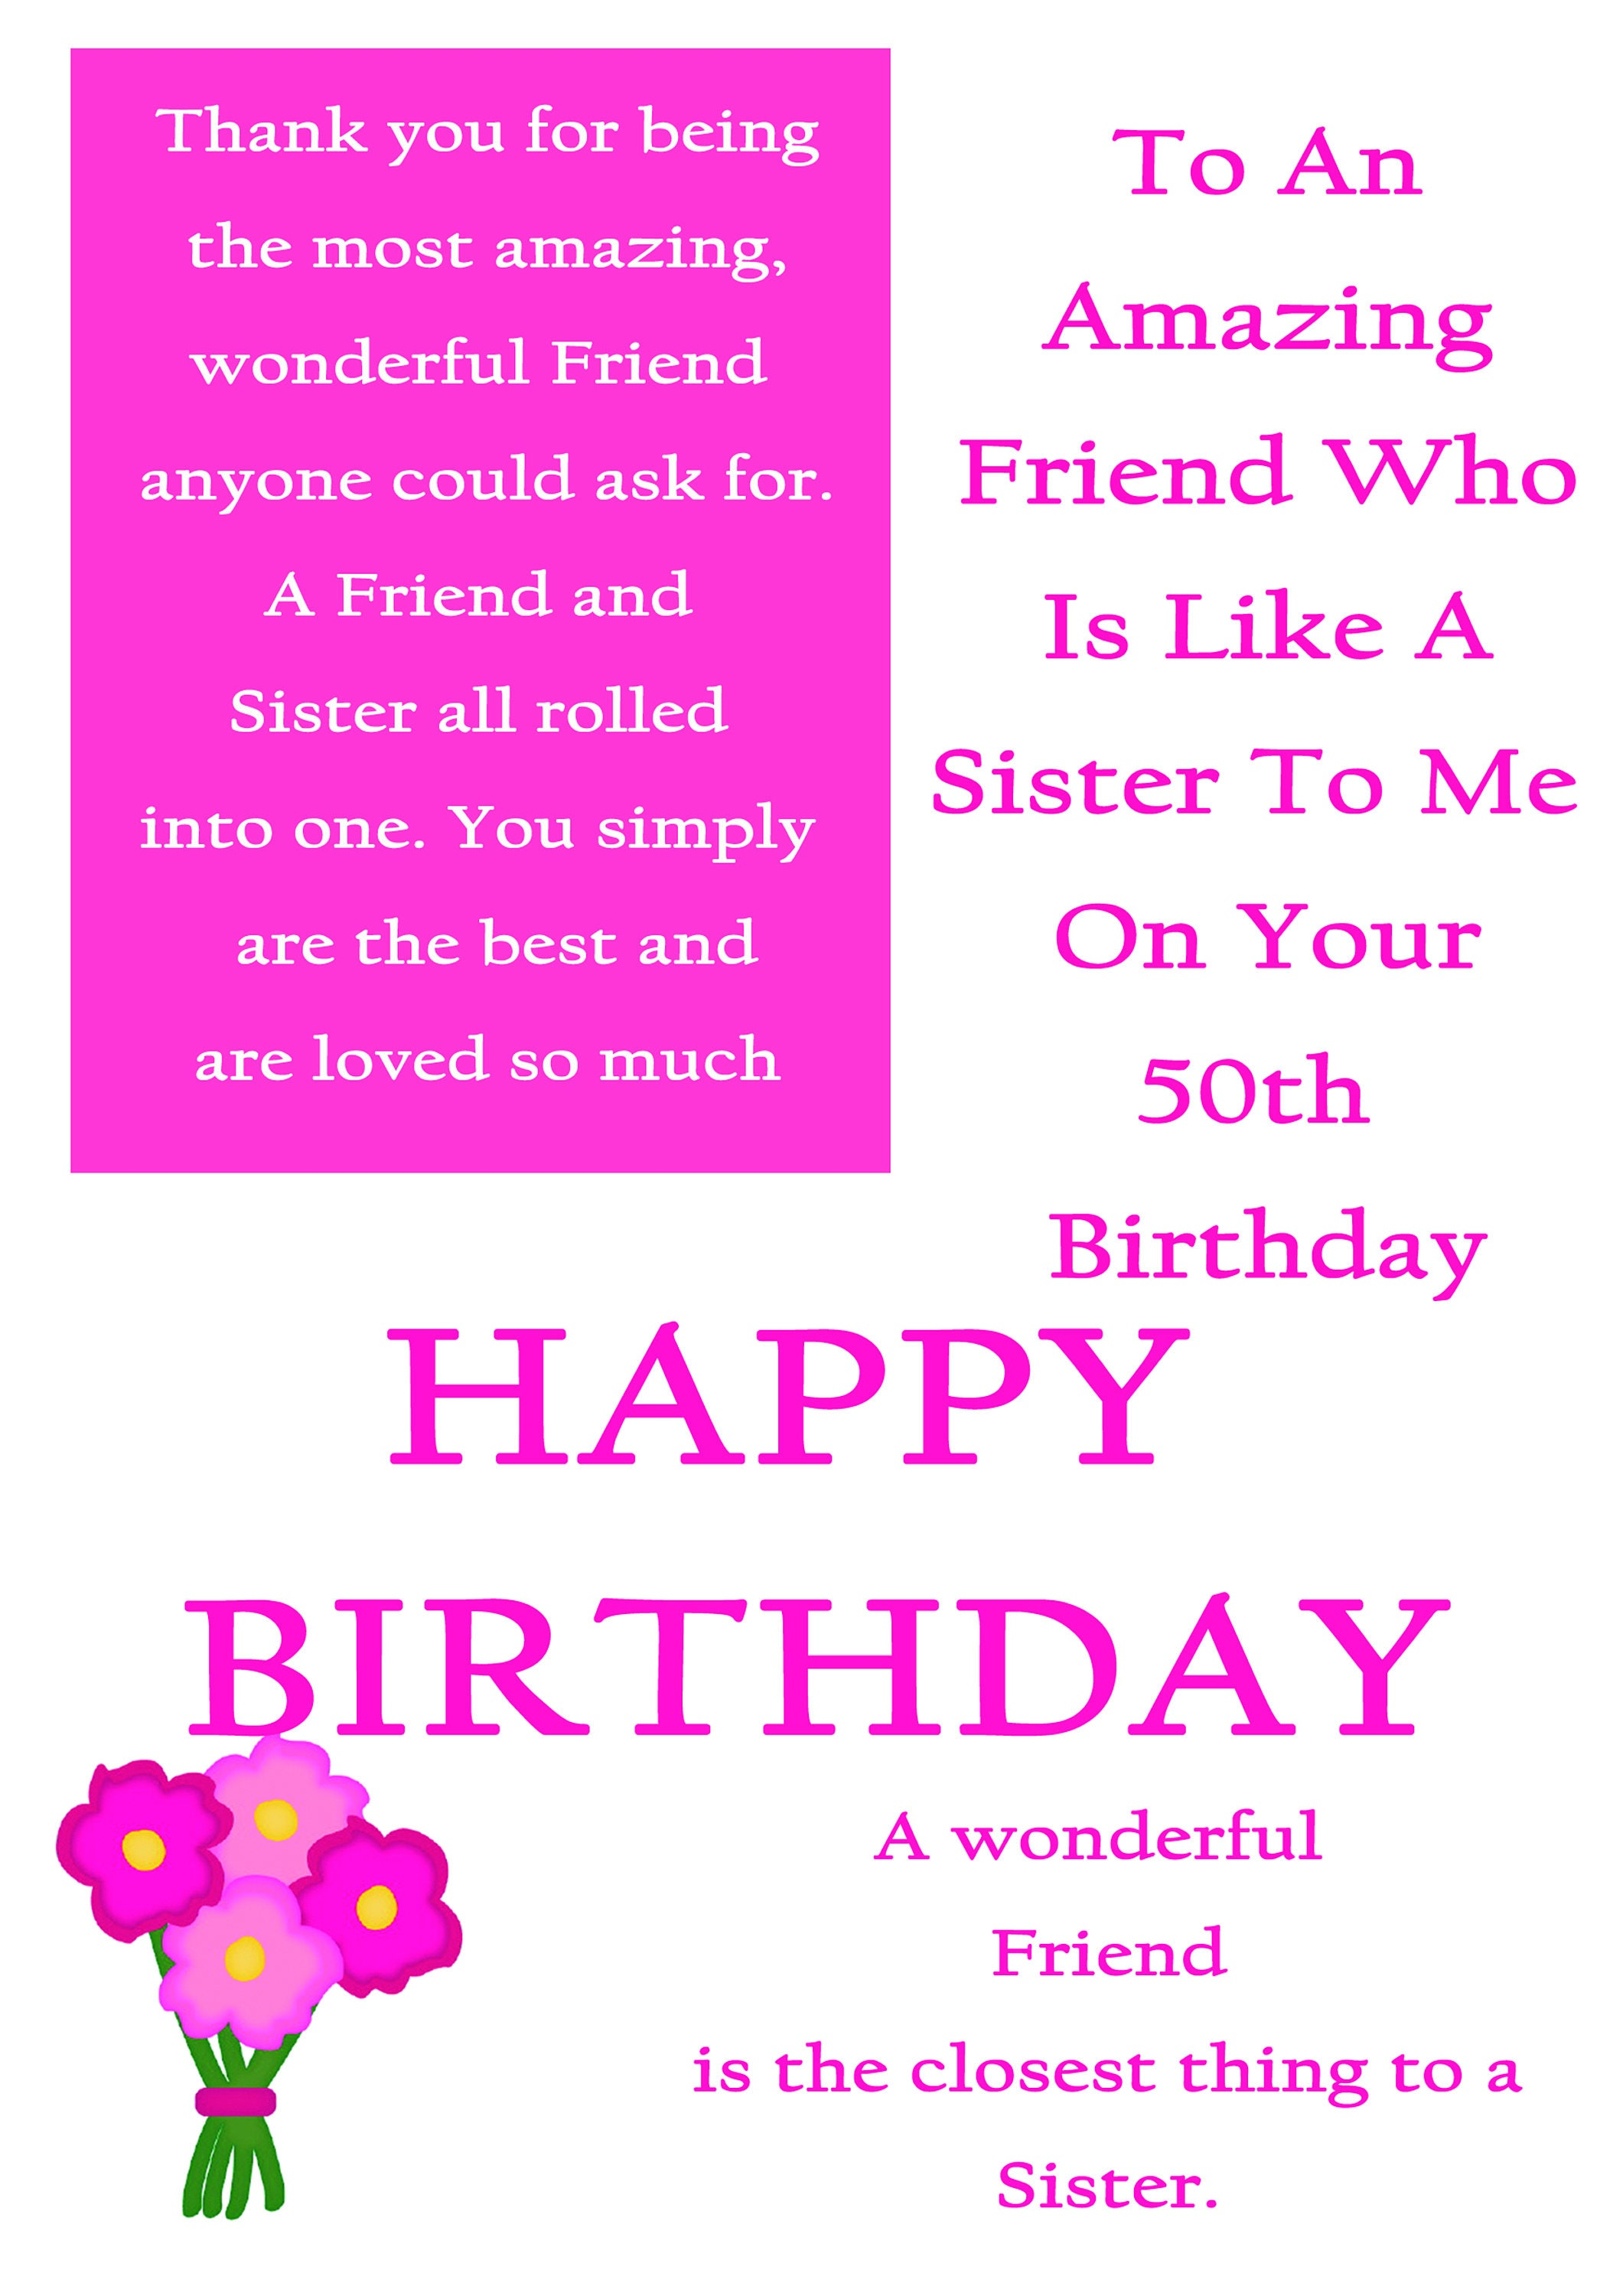 Friend Like A Sister 50 Birthday Card With Removable Laminate